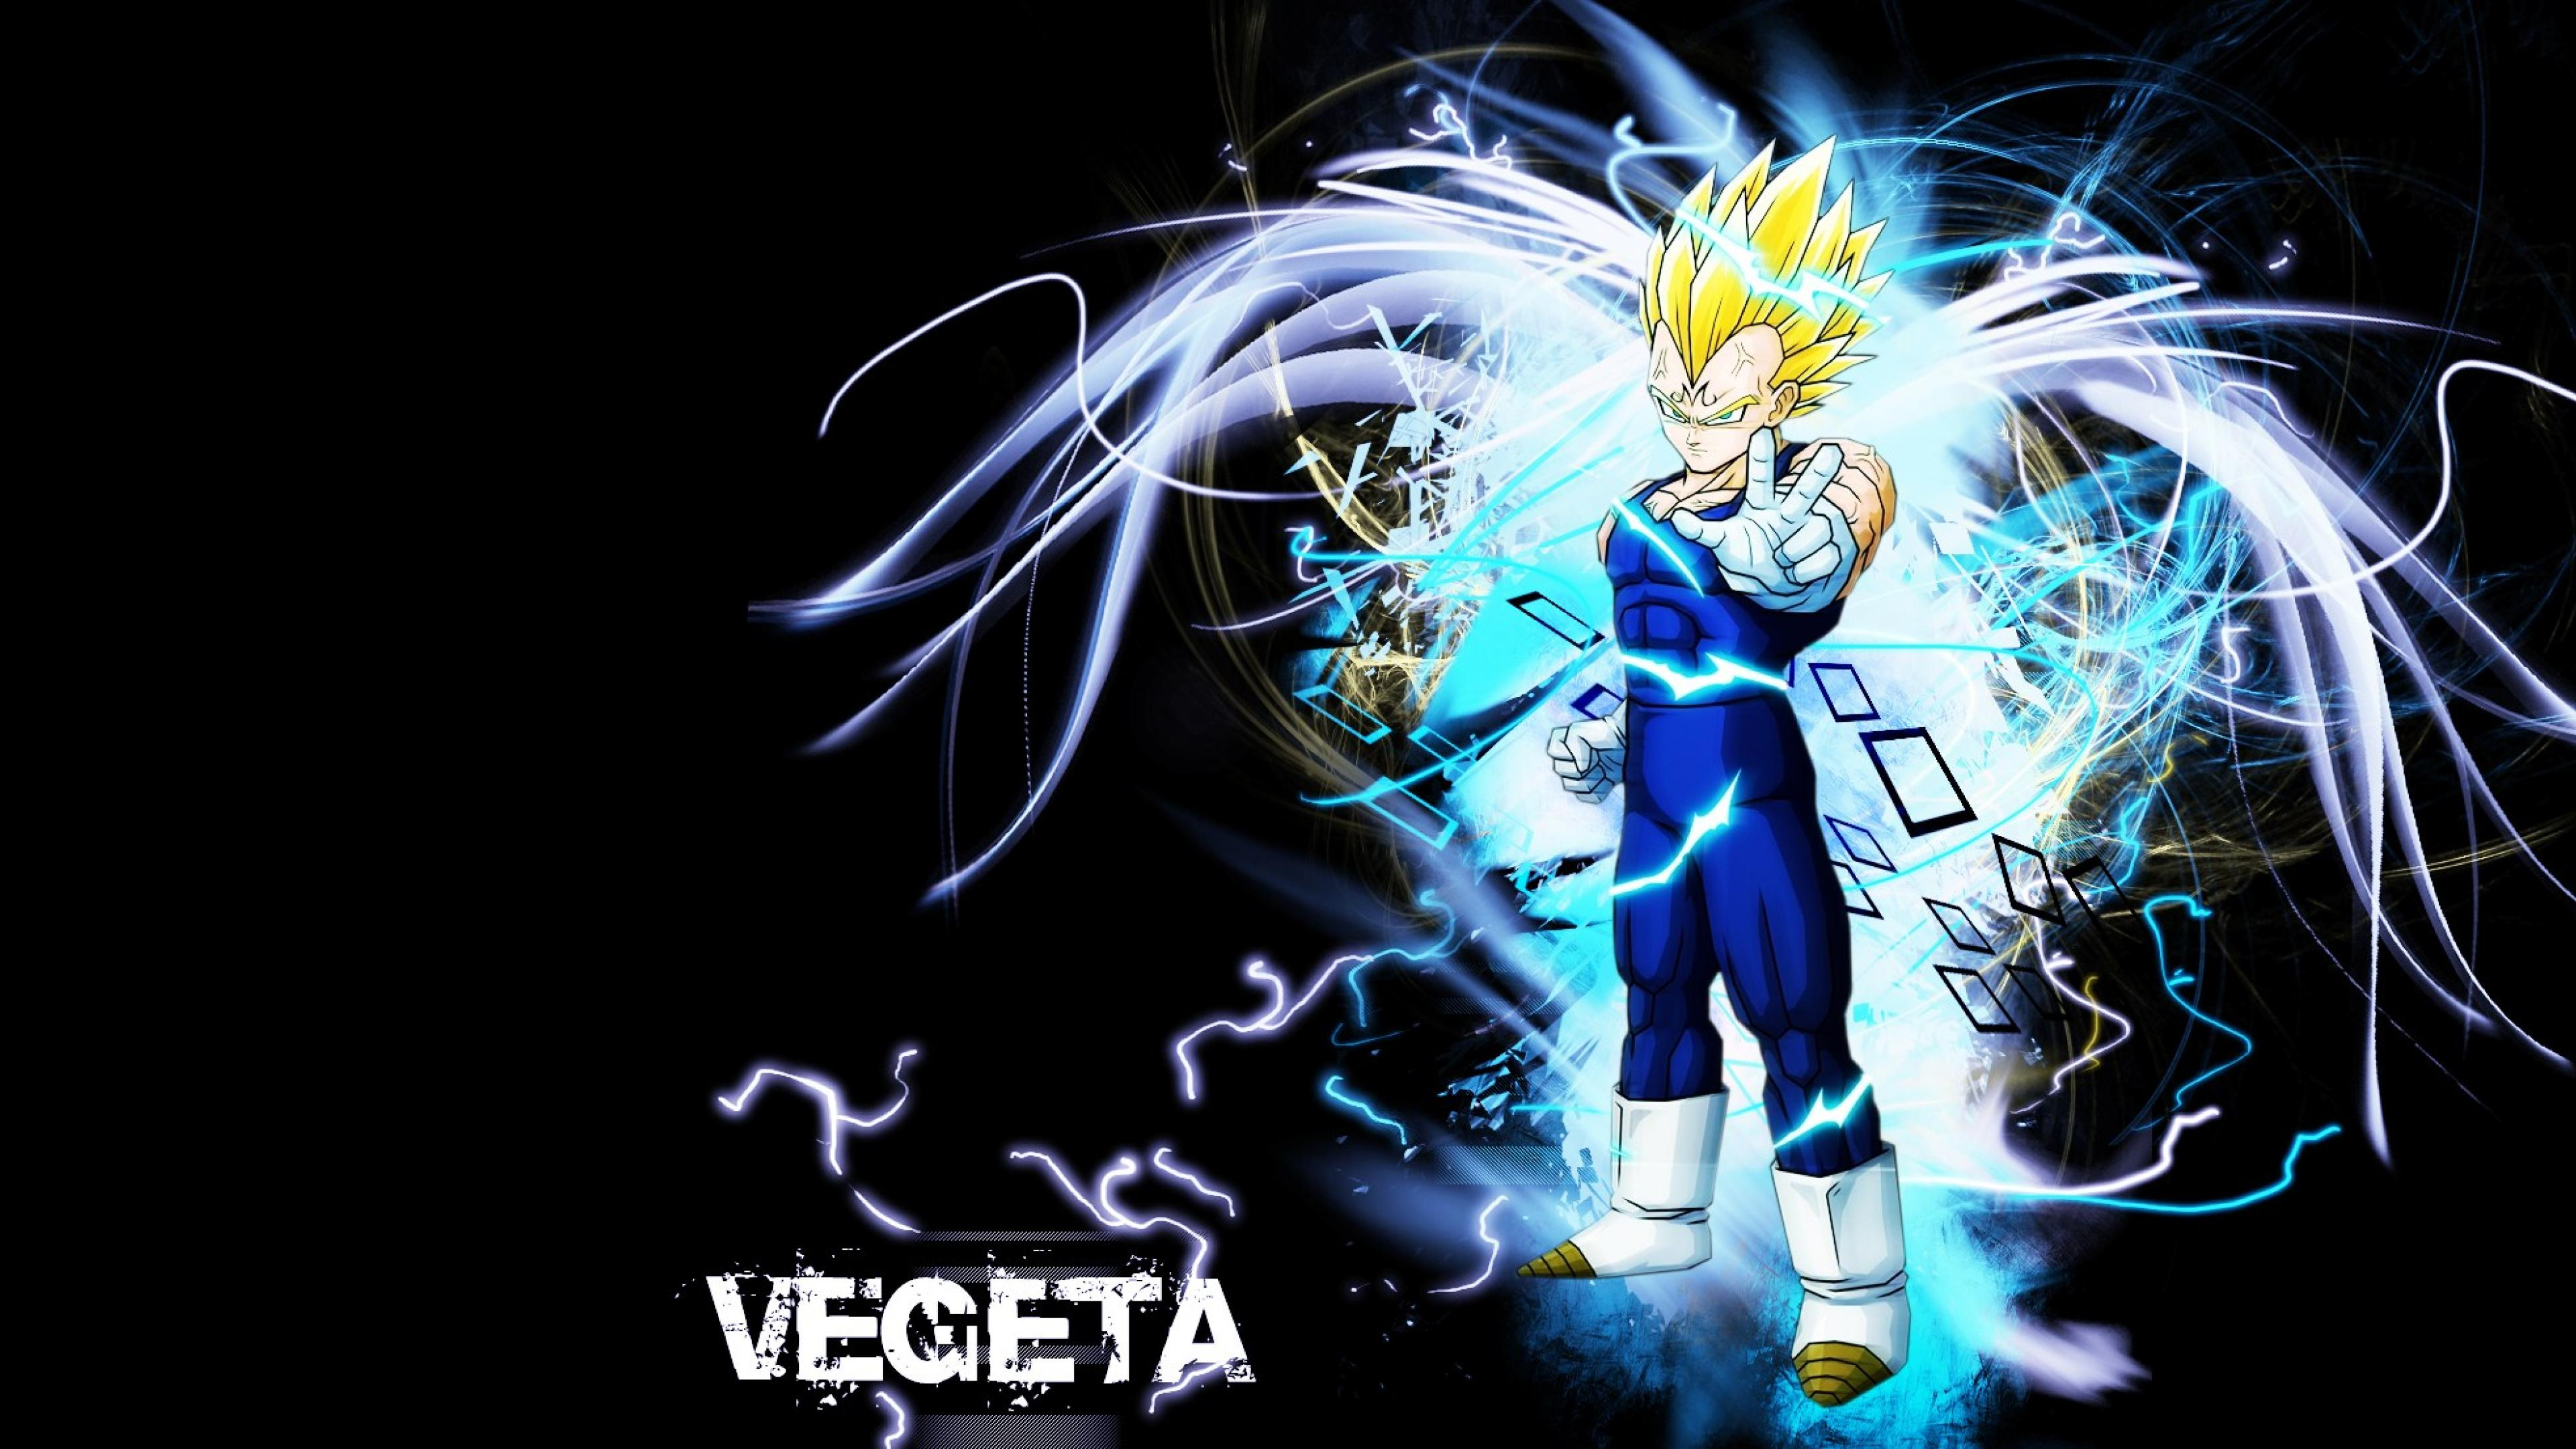 Dragon ball z wallpaper 21 of 49 super saiyan vegeta - Dragon ball super background music mp3 download ...